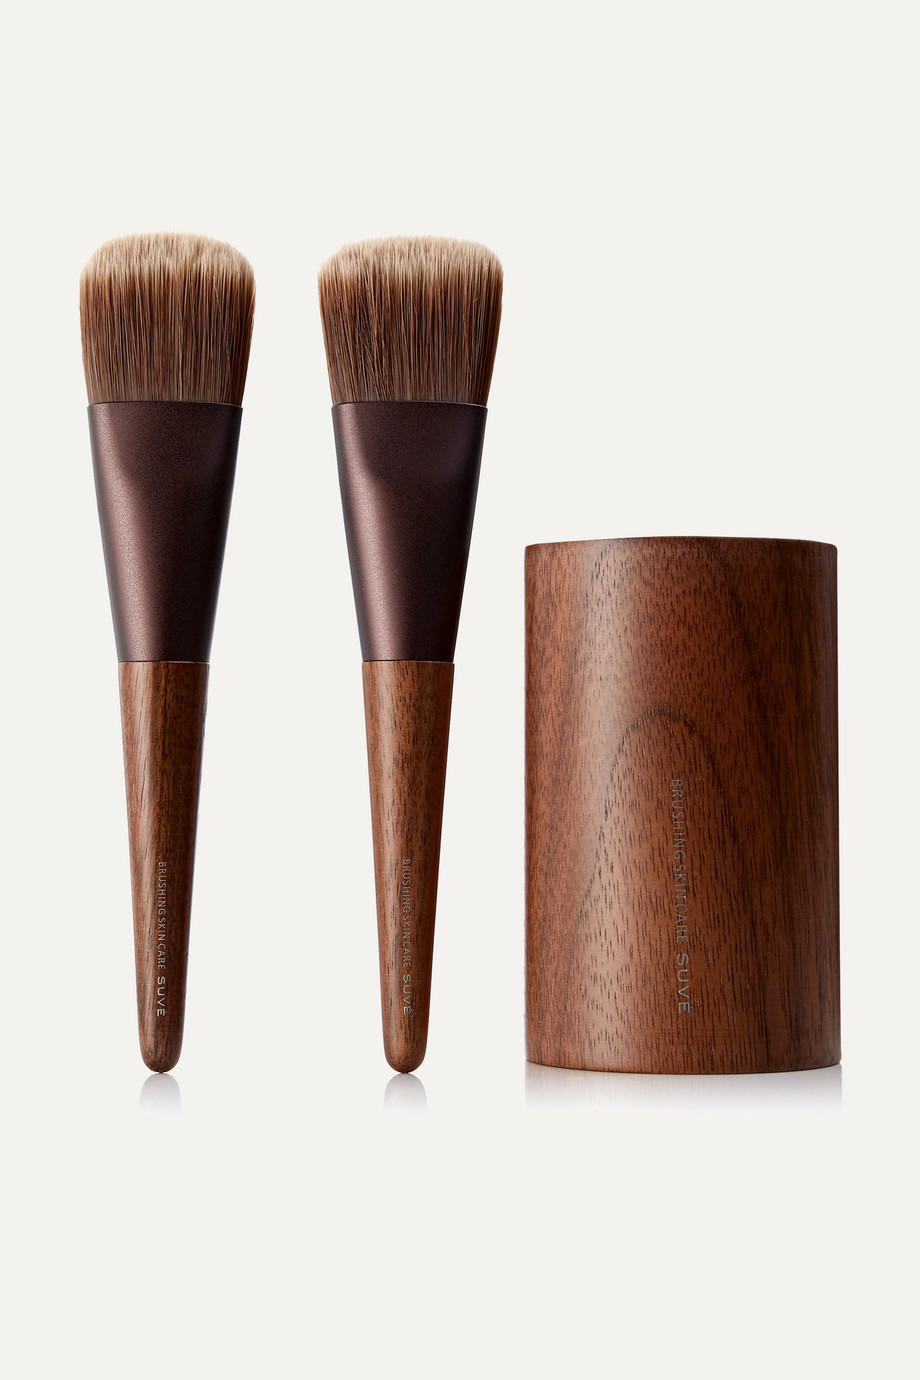 SHAQUDA Suvé Naderu Brush and Stand Set